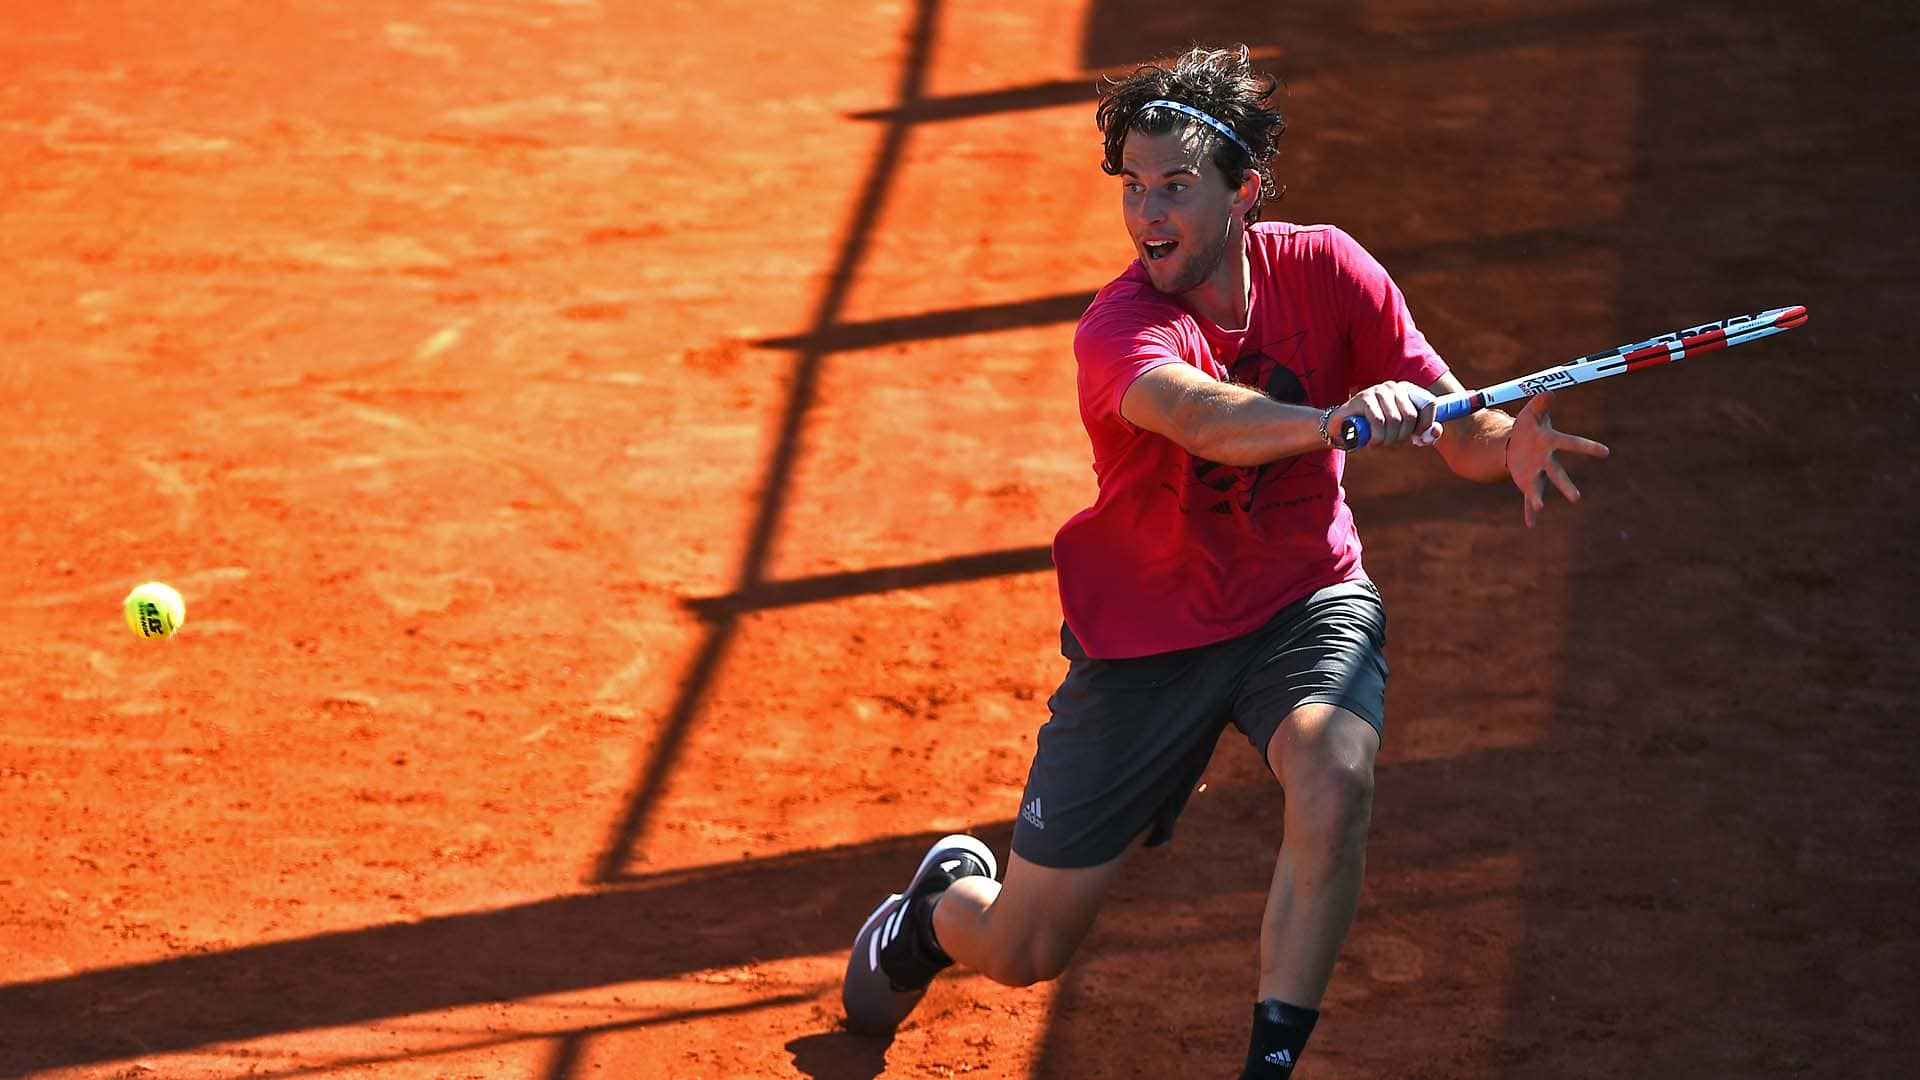 Madrid Open 2021: Dominic Thiem vs. Marcos Giron Tennis Pick and Prediction